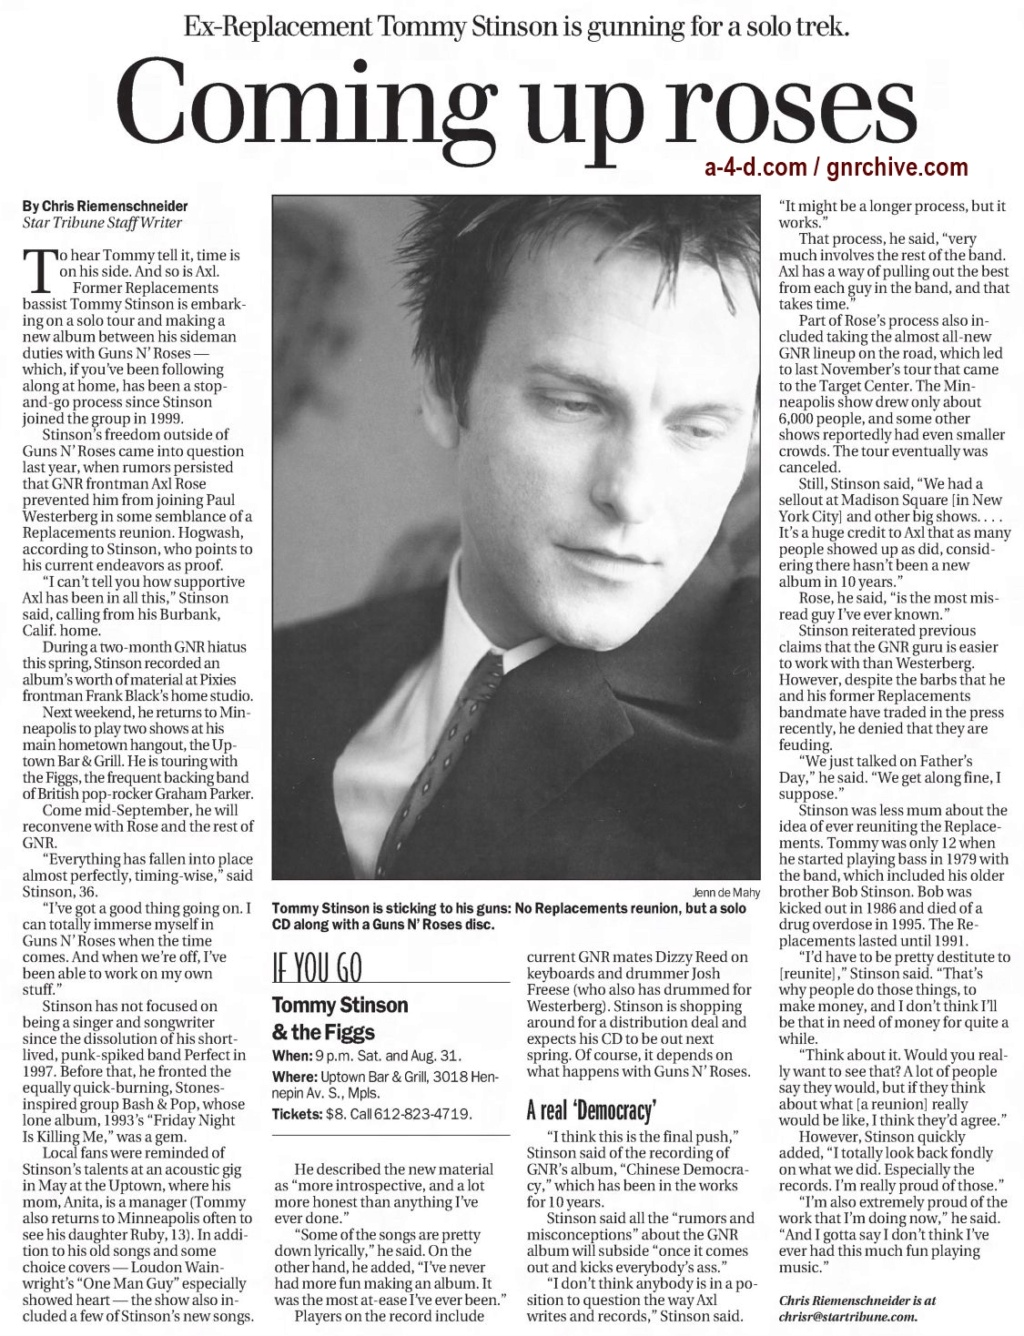 2003.08.24 - Star Tribune - Coming Up Roses (Tommy) 2003_028